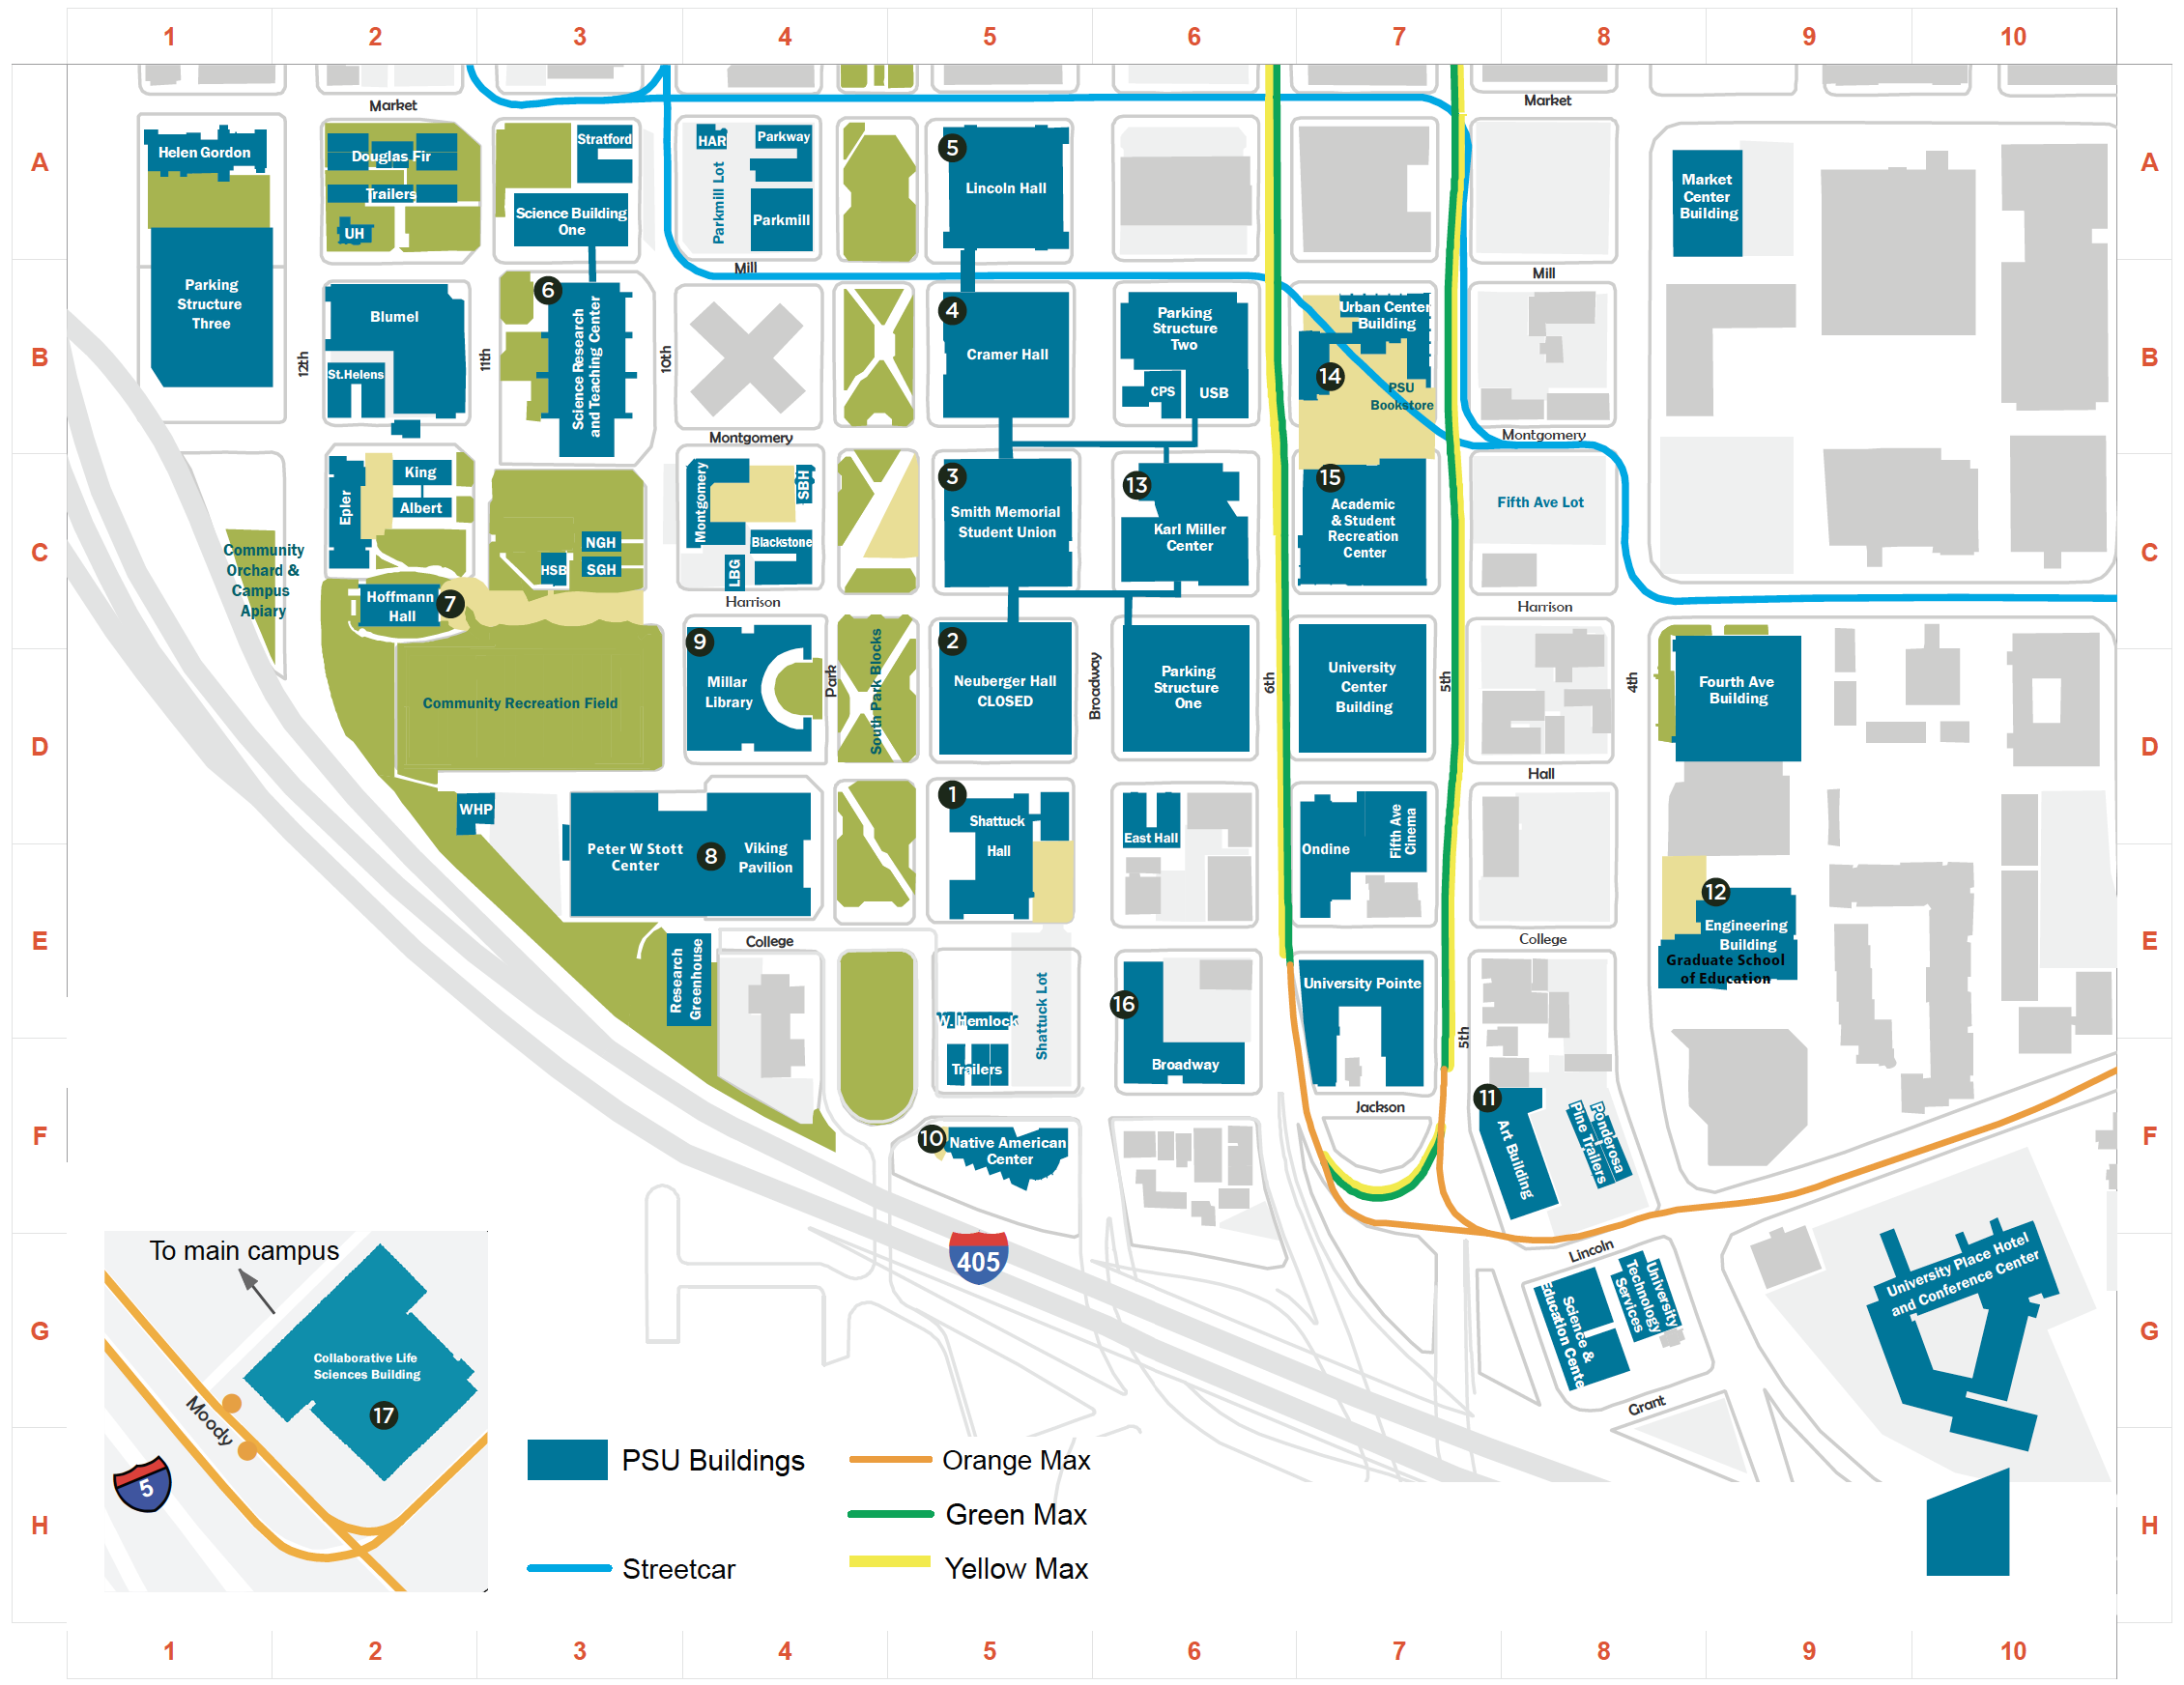 2017-18 PSU Campus Map